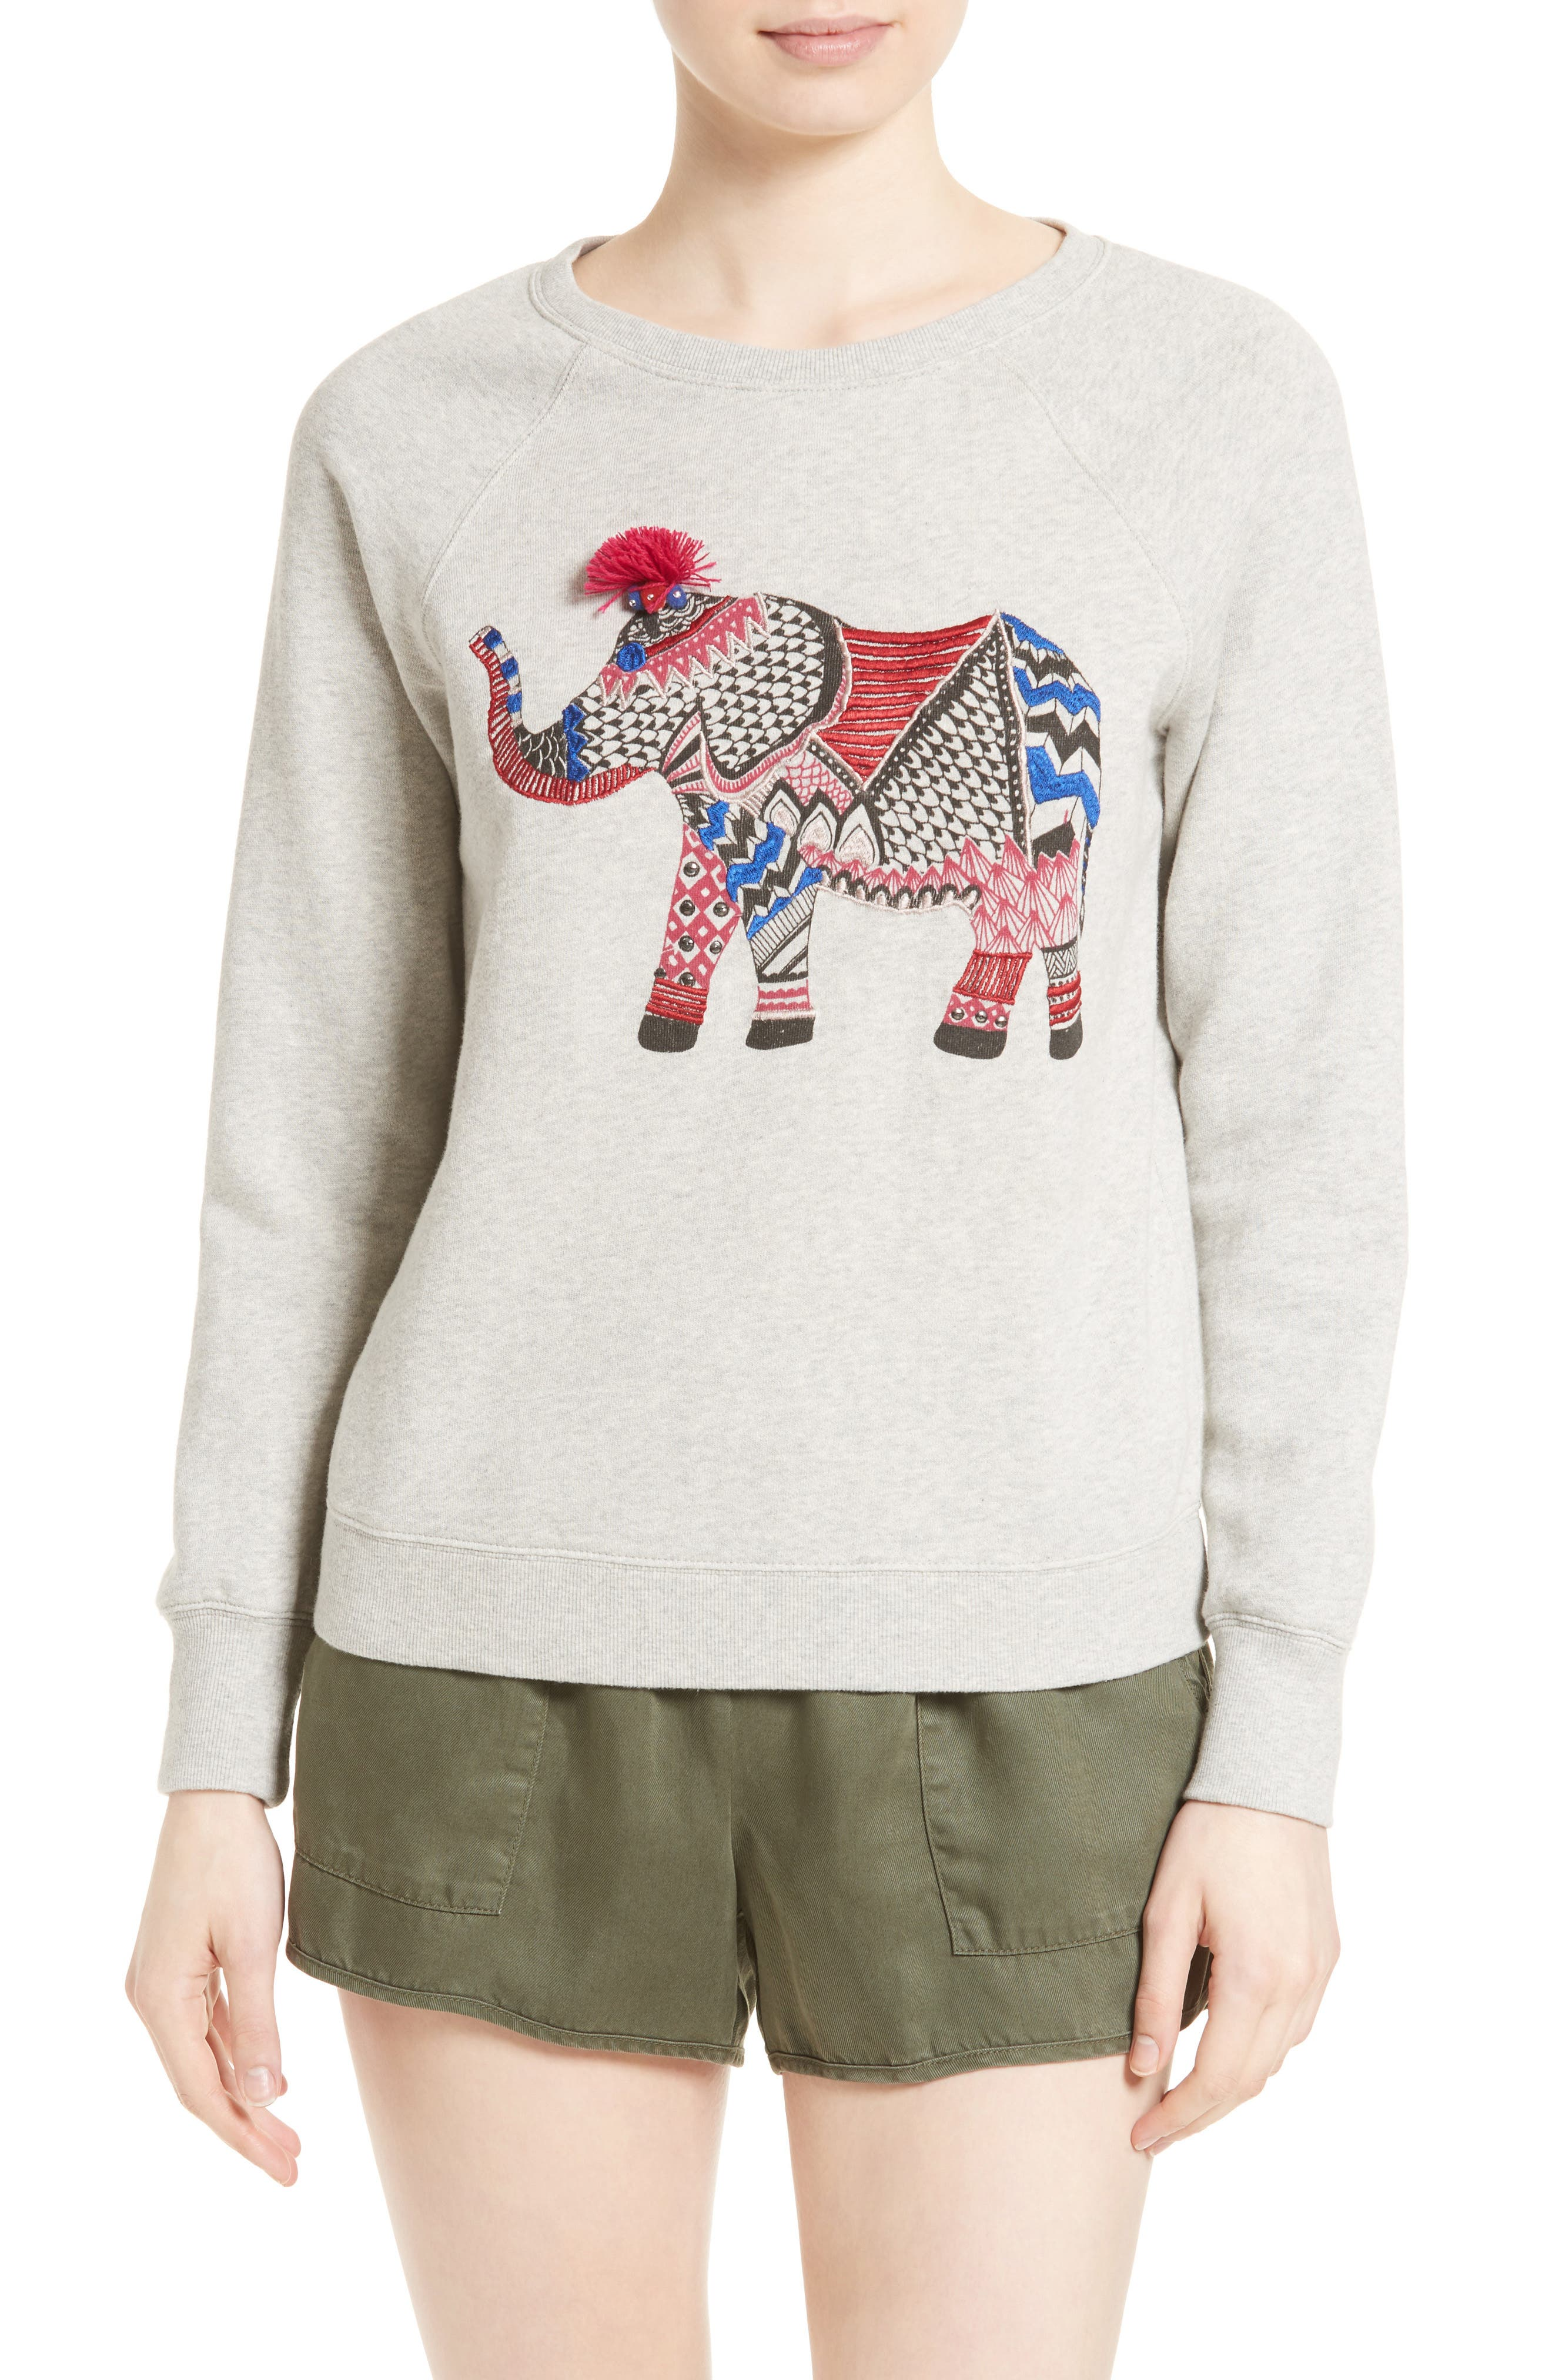 SOFT JOIE Annora Embroidered Elephant Sweatshirt, Main, color, 099